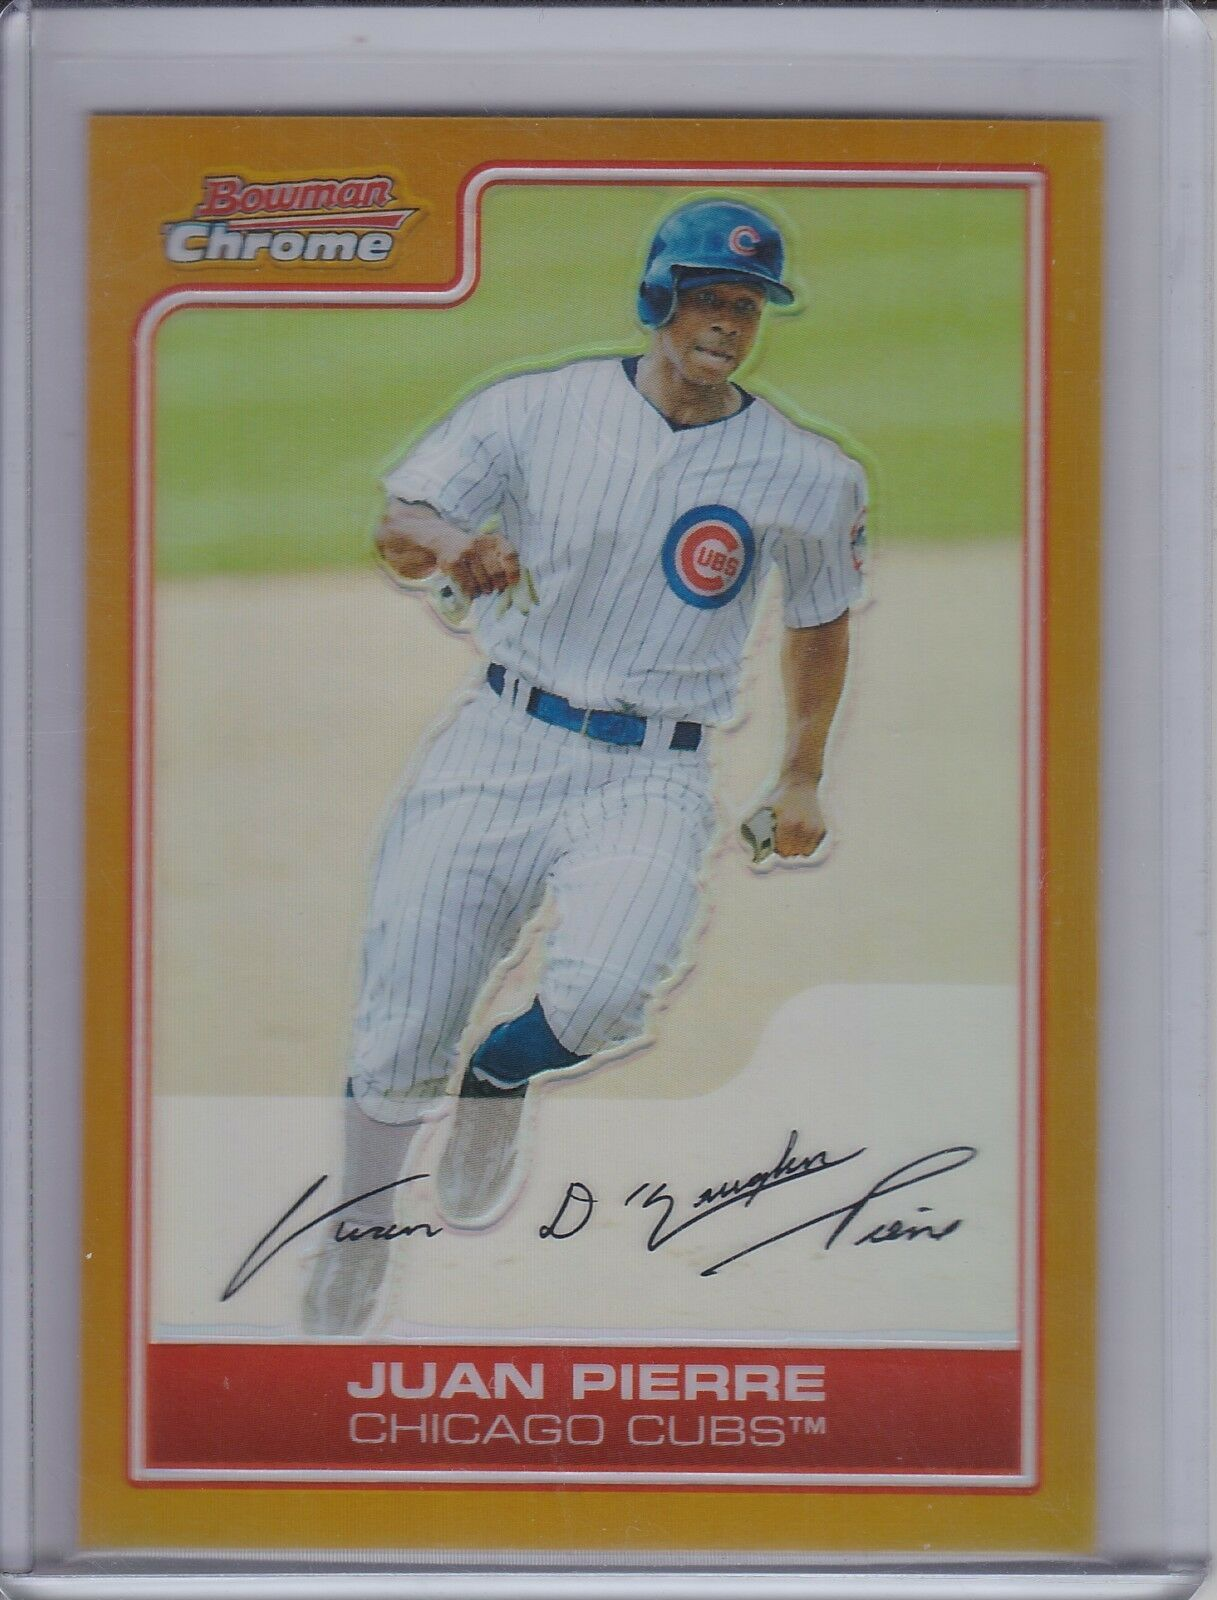 Primary image for JUAN PIERRE 2006 Bowman Chrome Gold Refractor ERROR No Serial Number #51 (D3422)